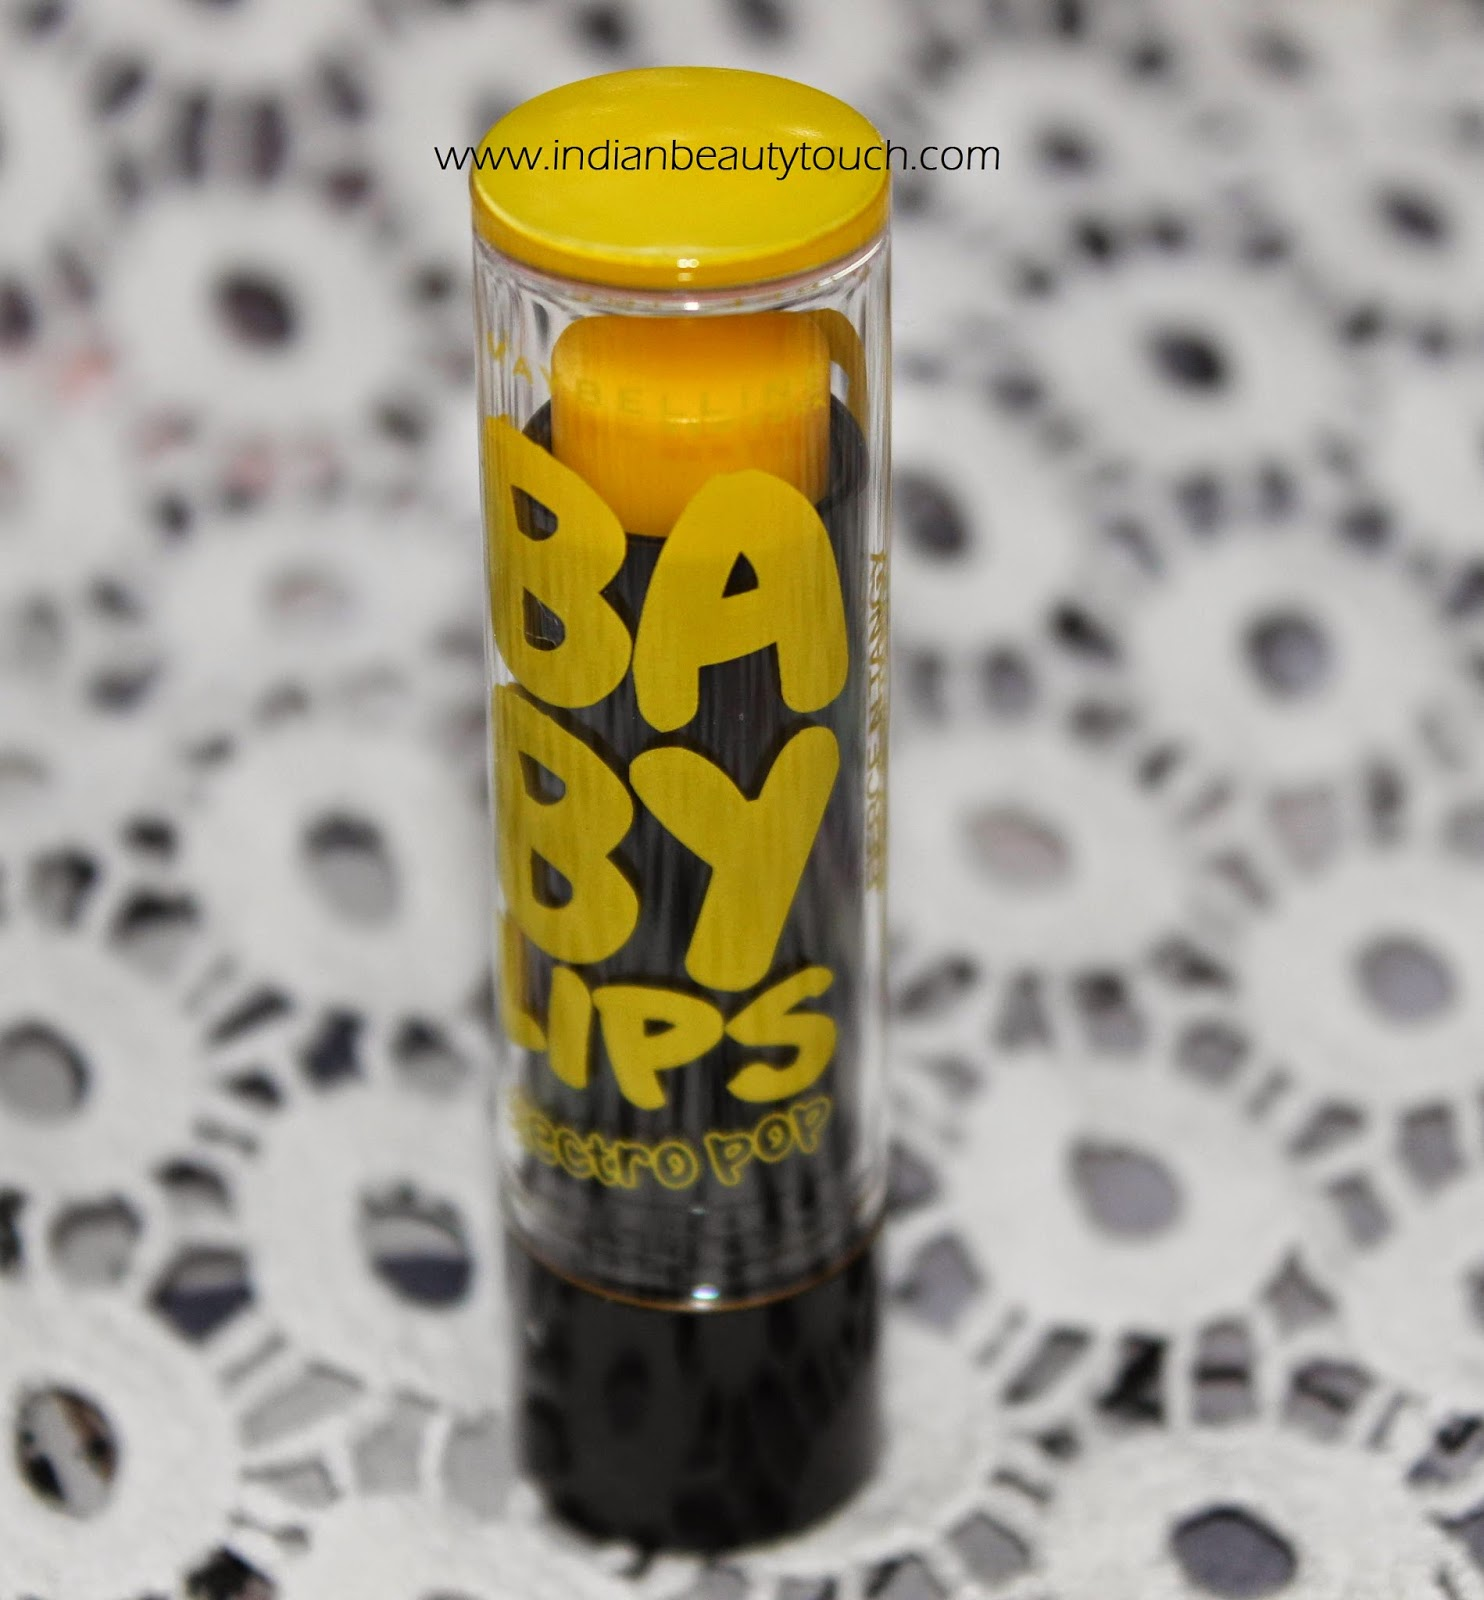 Maybelline Baby Lips Electro Pop Lip Balm Fierce N Tangy Review, maybelline baby lips , maybelline eletro pop baby lips review , maybelline india